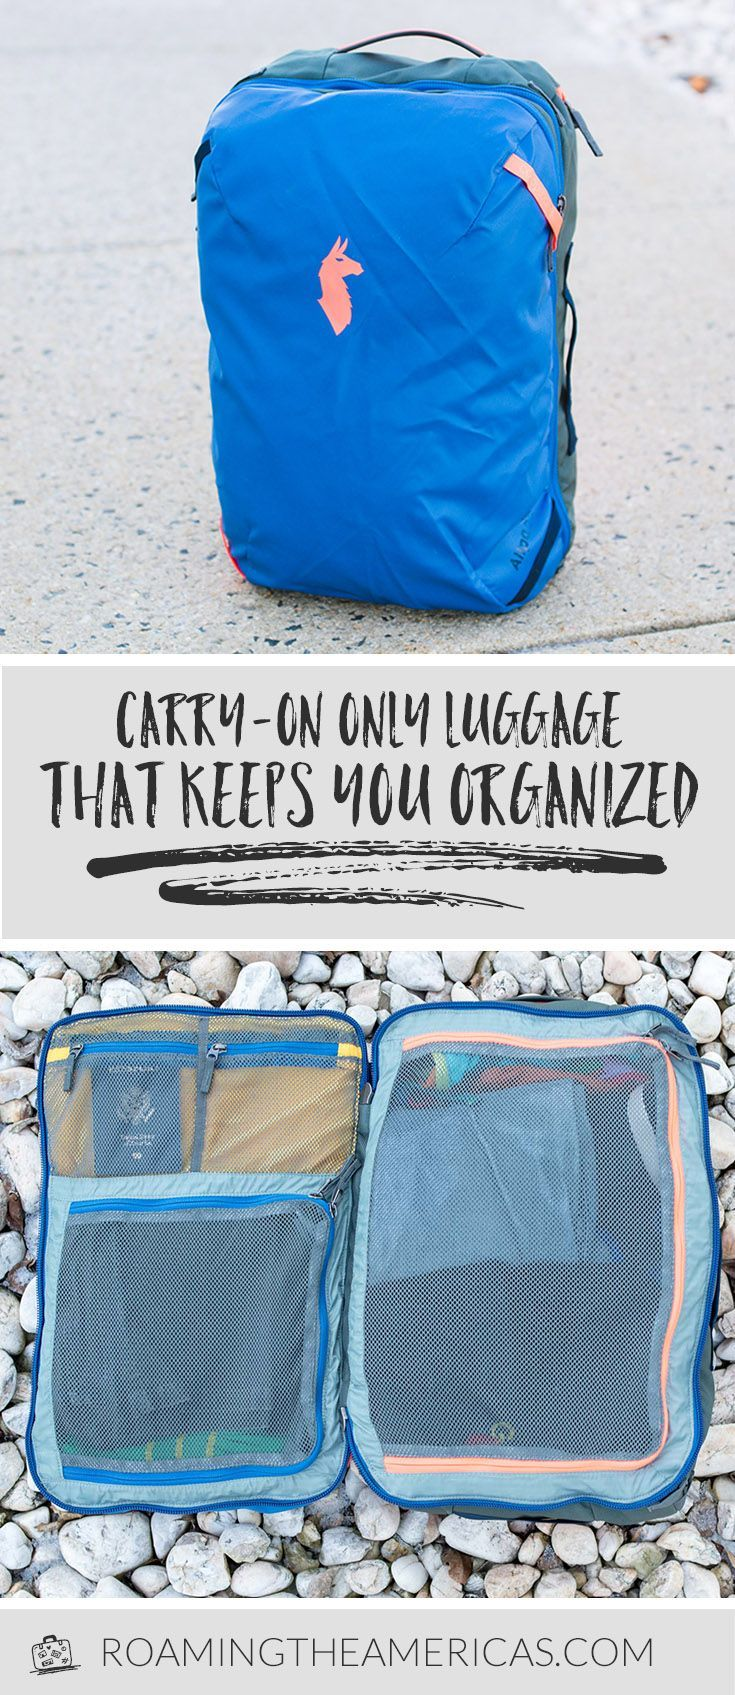 Carry-on only luggage | Convertible suitcase backpack | Travel backpack review | Cotopaxi Allpa 35L #travel #traveltips #travelgear  via @roamtheamericas